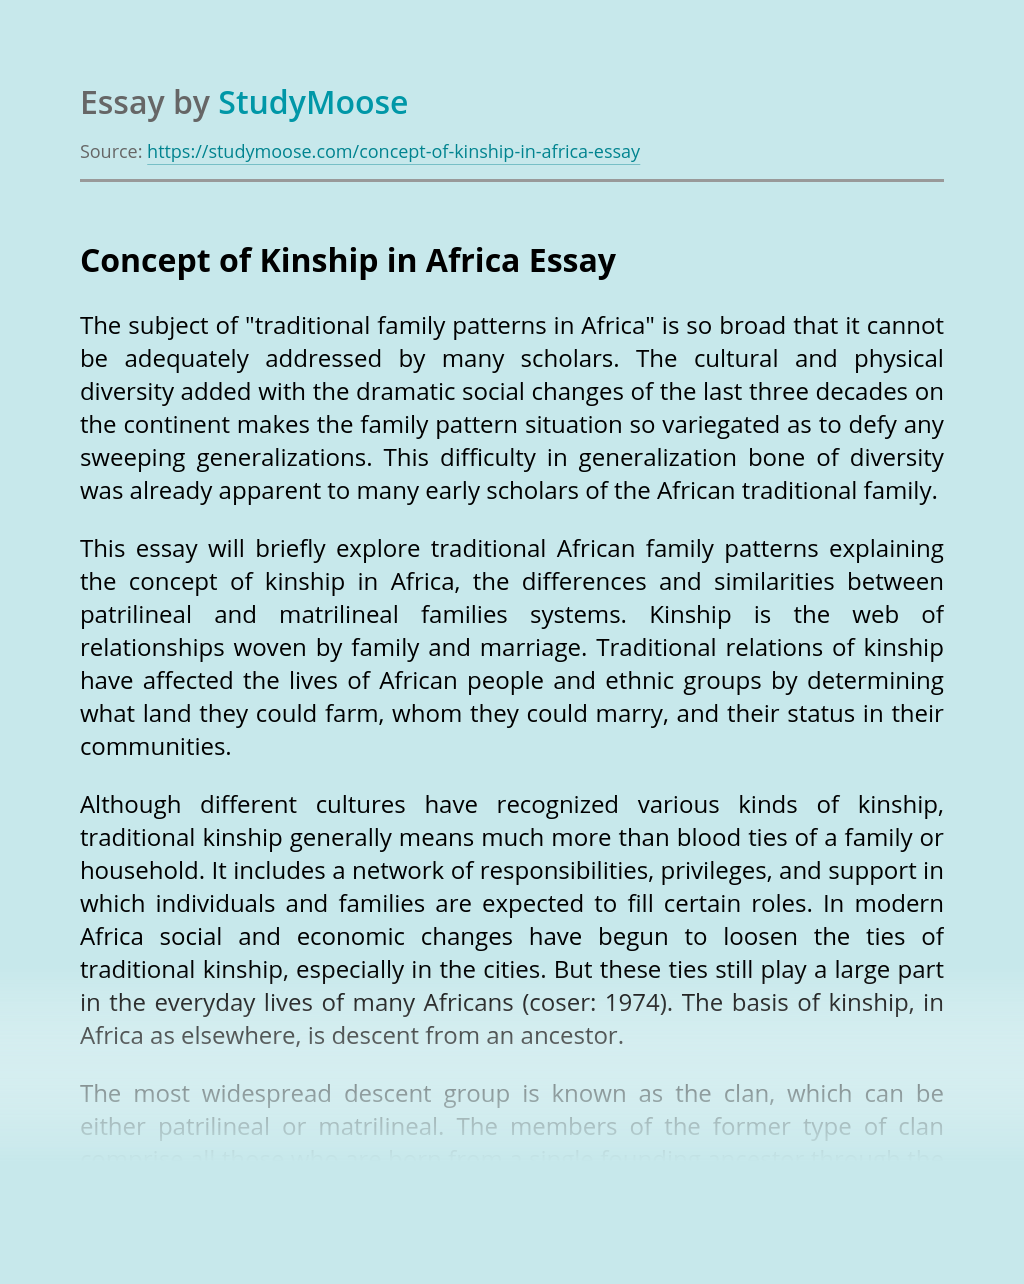 Concept of Kinship in Africa